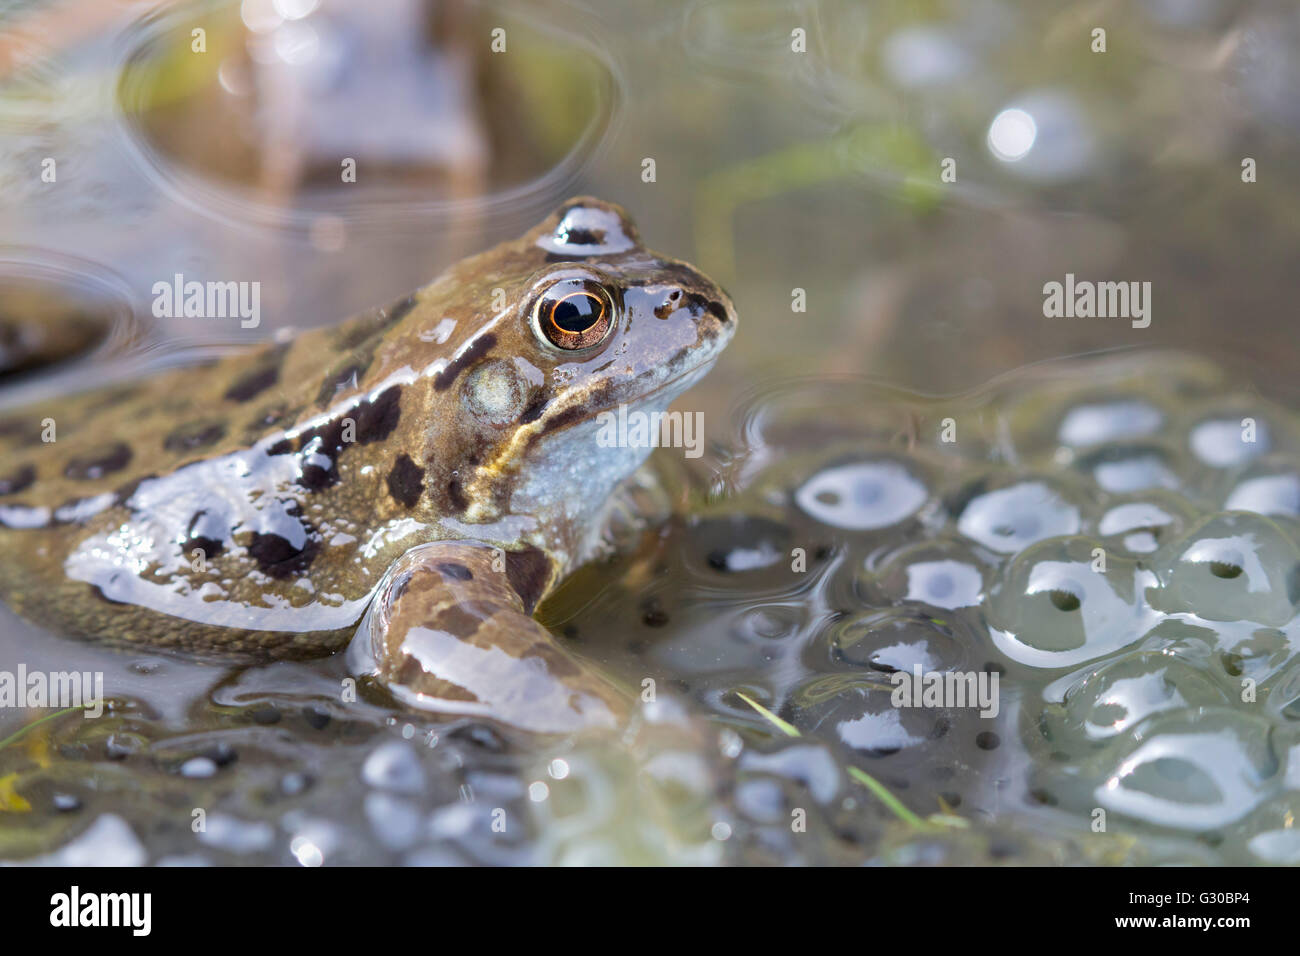 Common frog (Rana temporaria) in spawning pond, Northumberland, England, United Kingdom, Europe - Stock Image